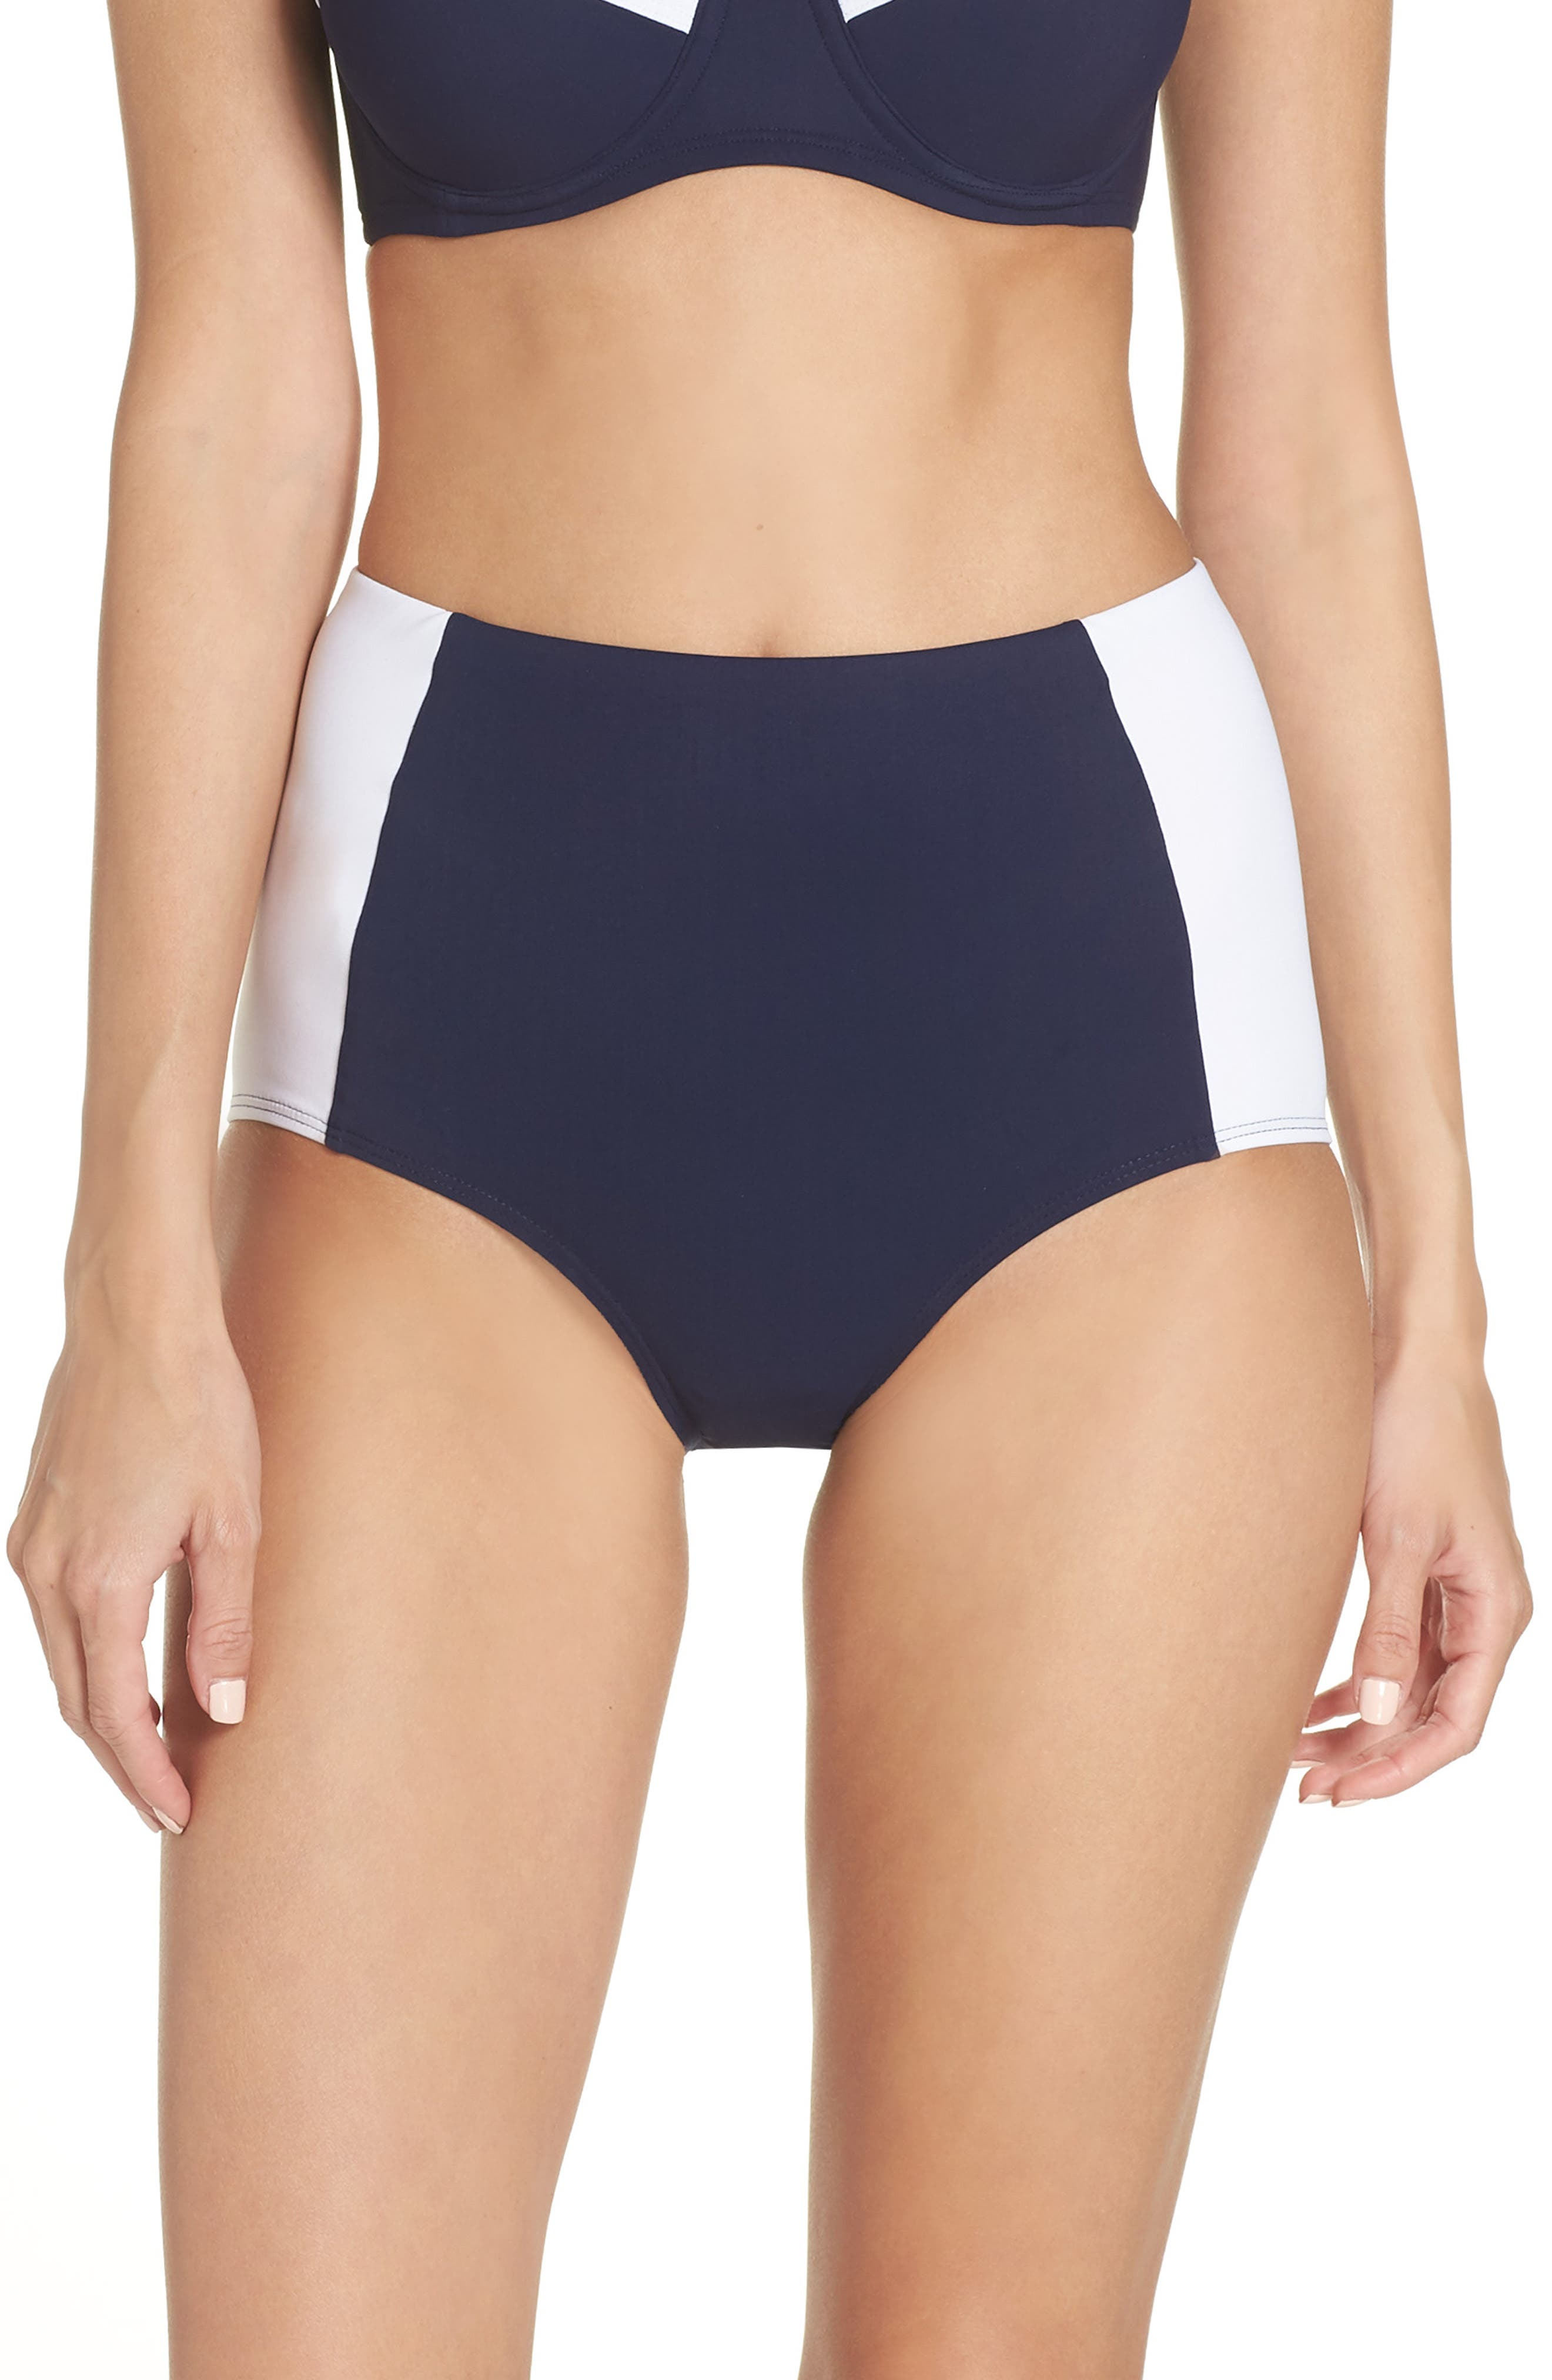 Lipsi High-Waist Colorblock Bikini Swim Bottoms in Tory Navy/ White